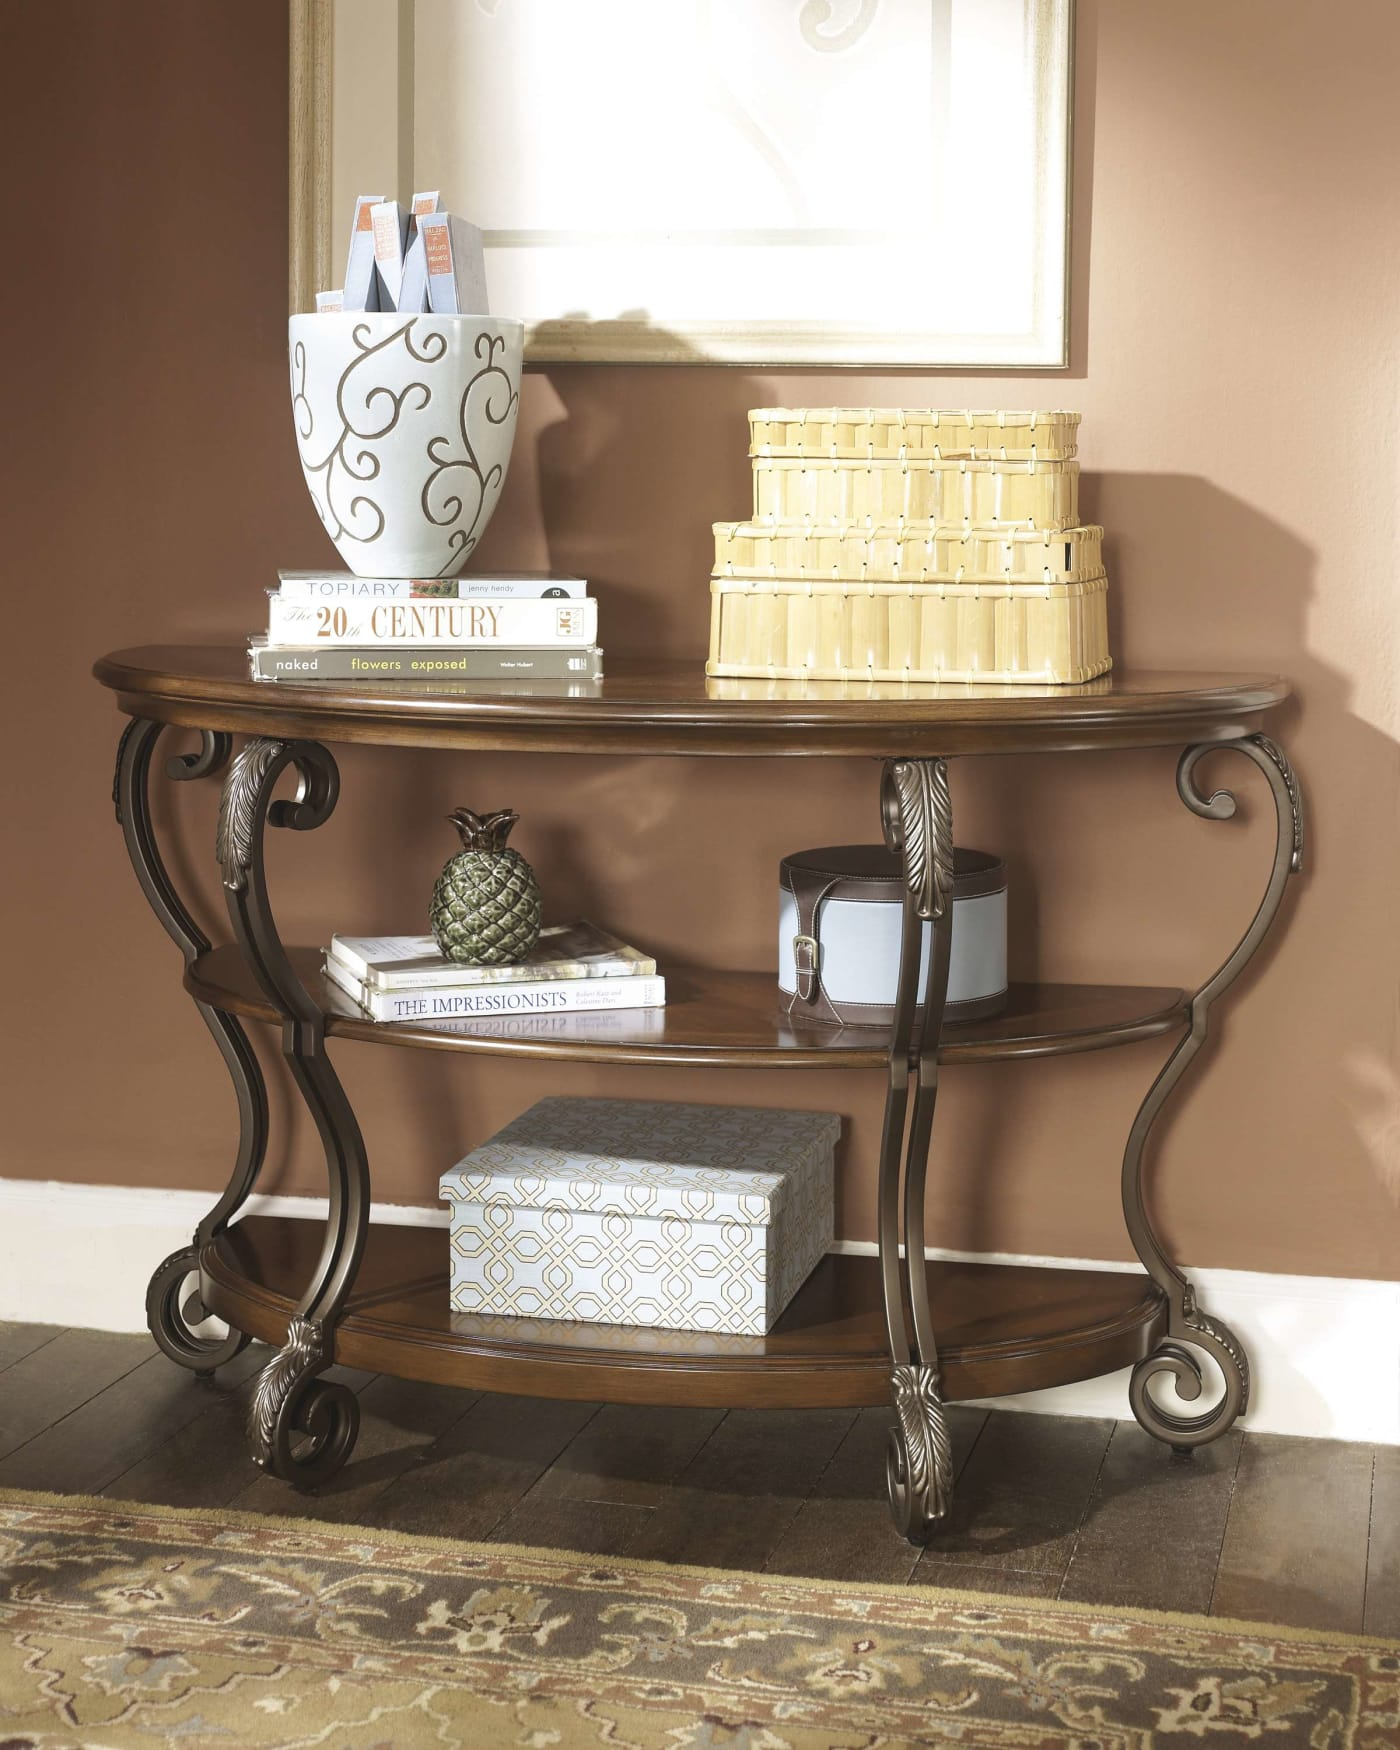 T517 0 Ashley Furniture Nestor: Signature Design By Ashley Nestor Medium Brown Sofa Table